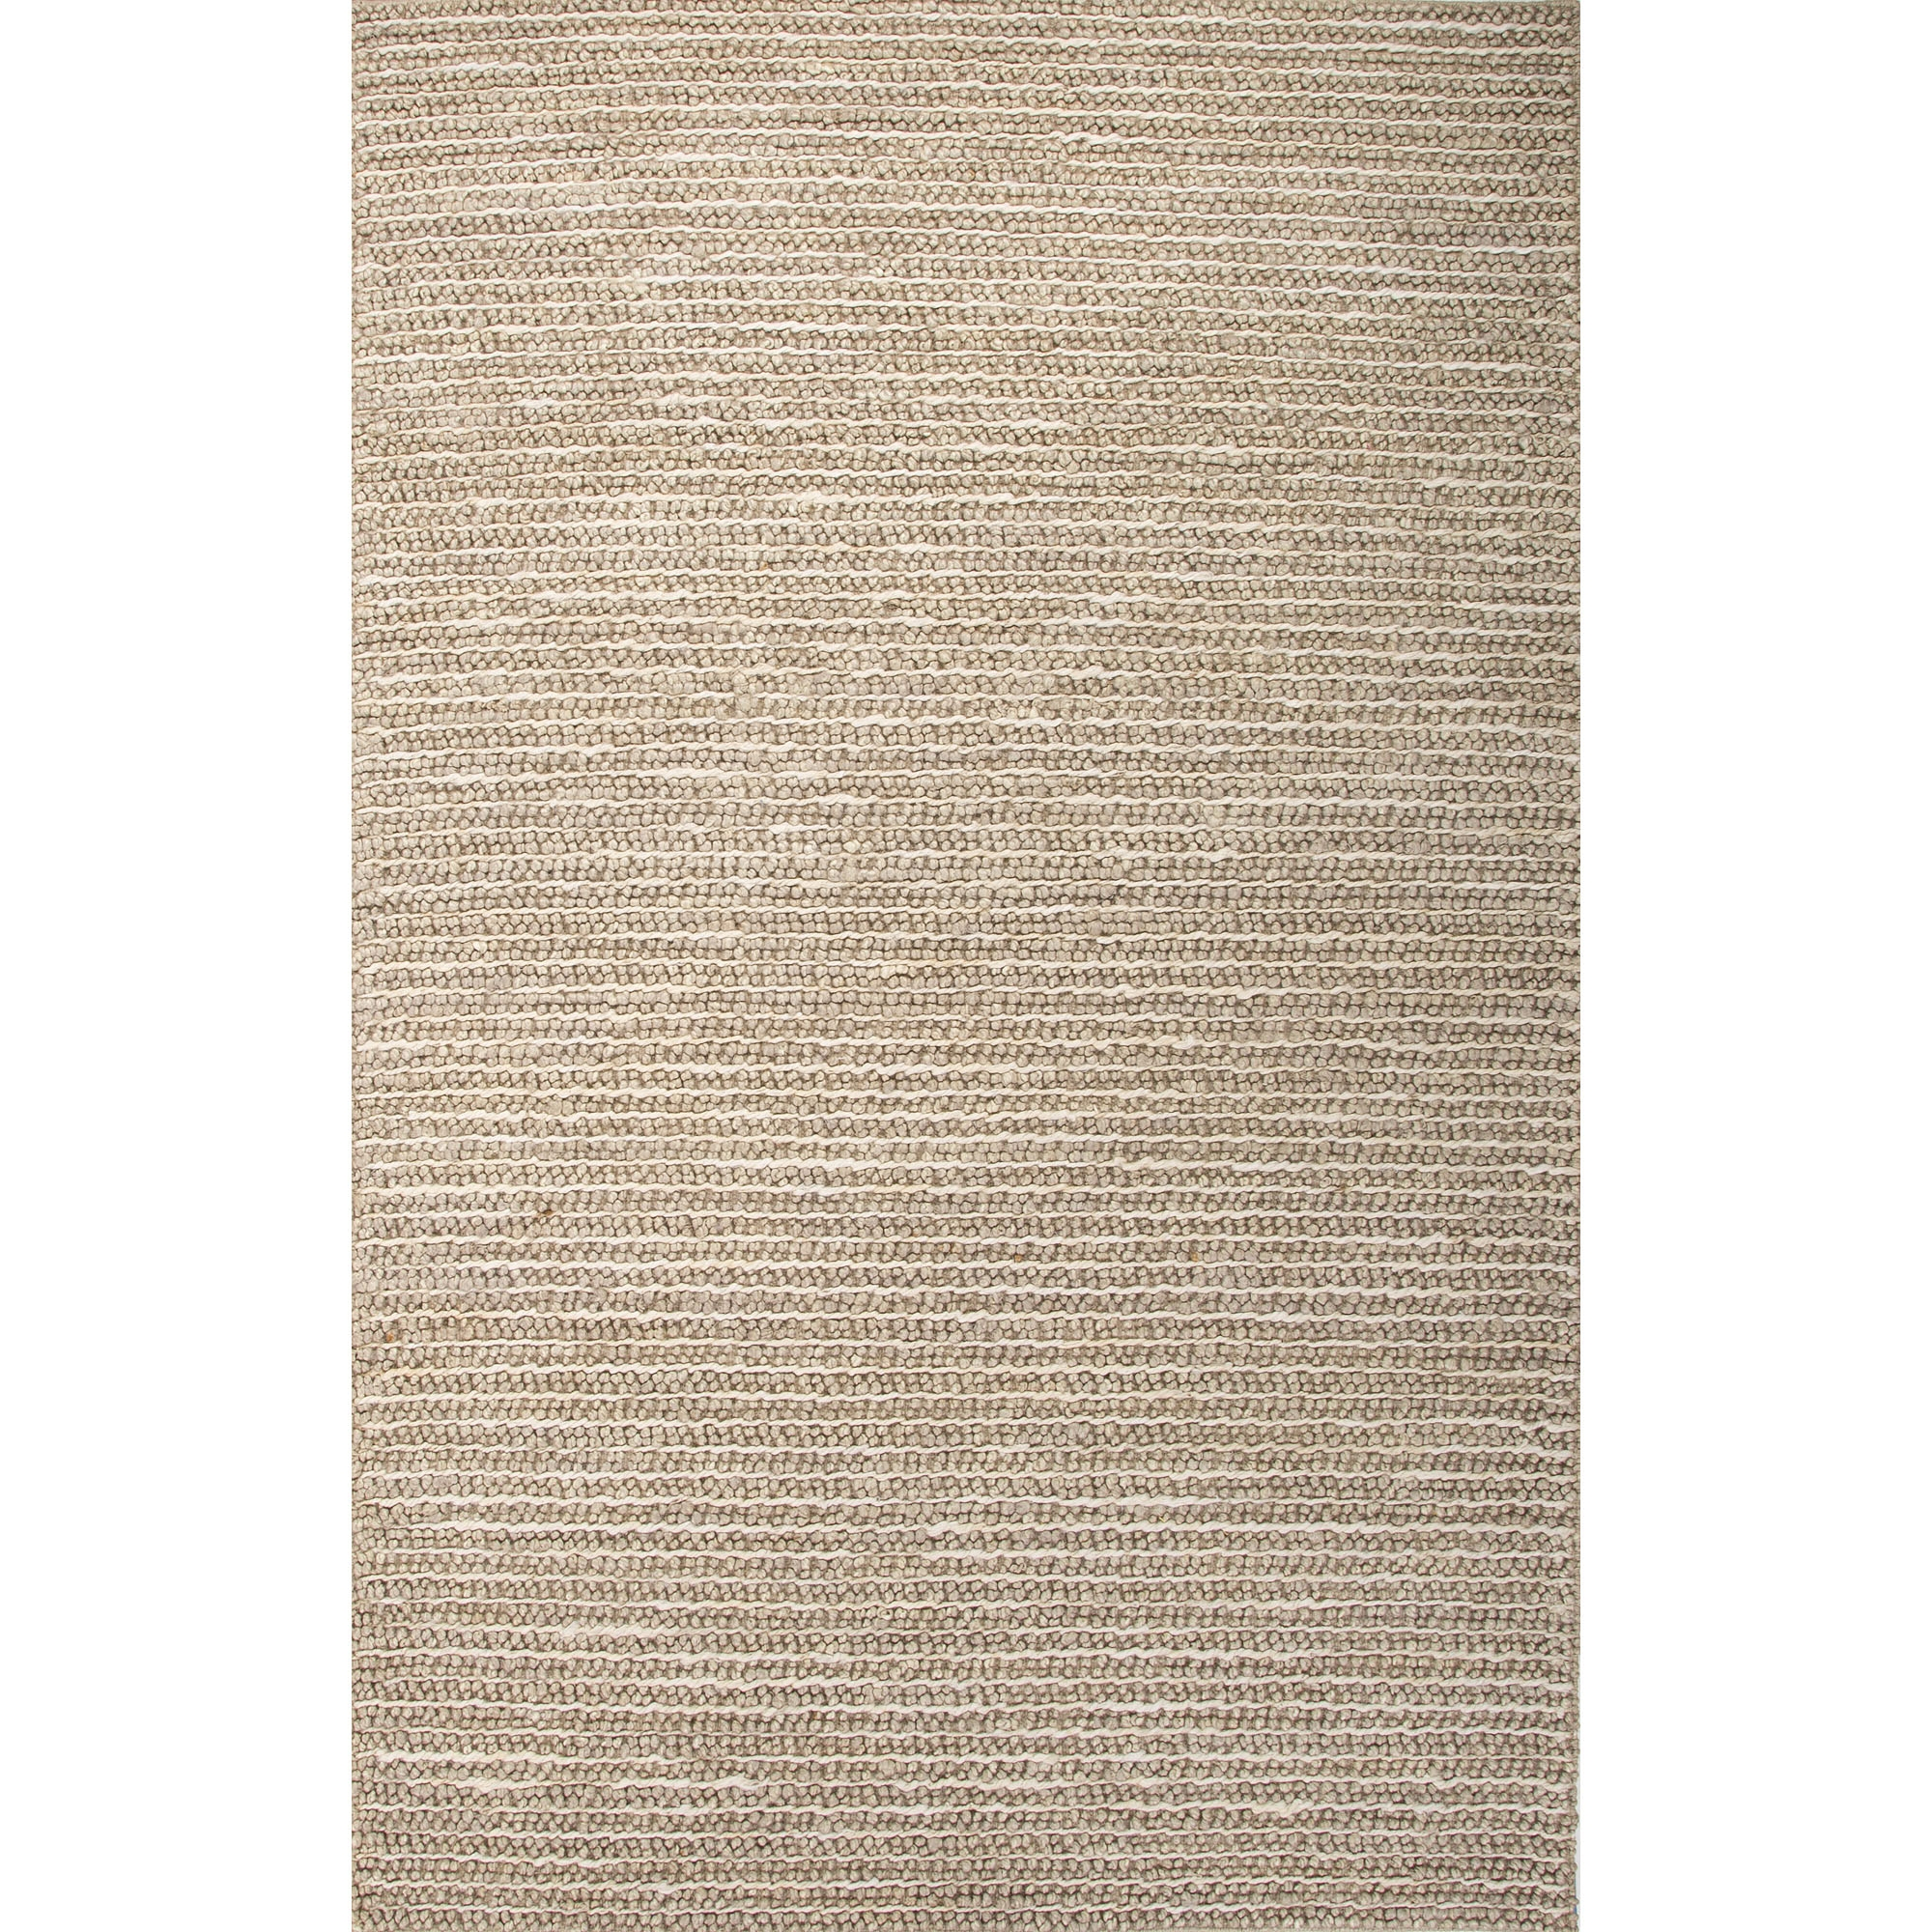 Jaipur Rugs Naturals Seaside 9 X 12 Rug Baers Furniture Rug In Seaside Rugs (View 4 of 15)